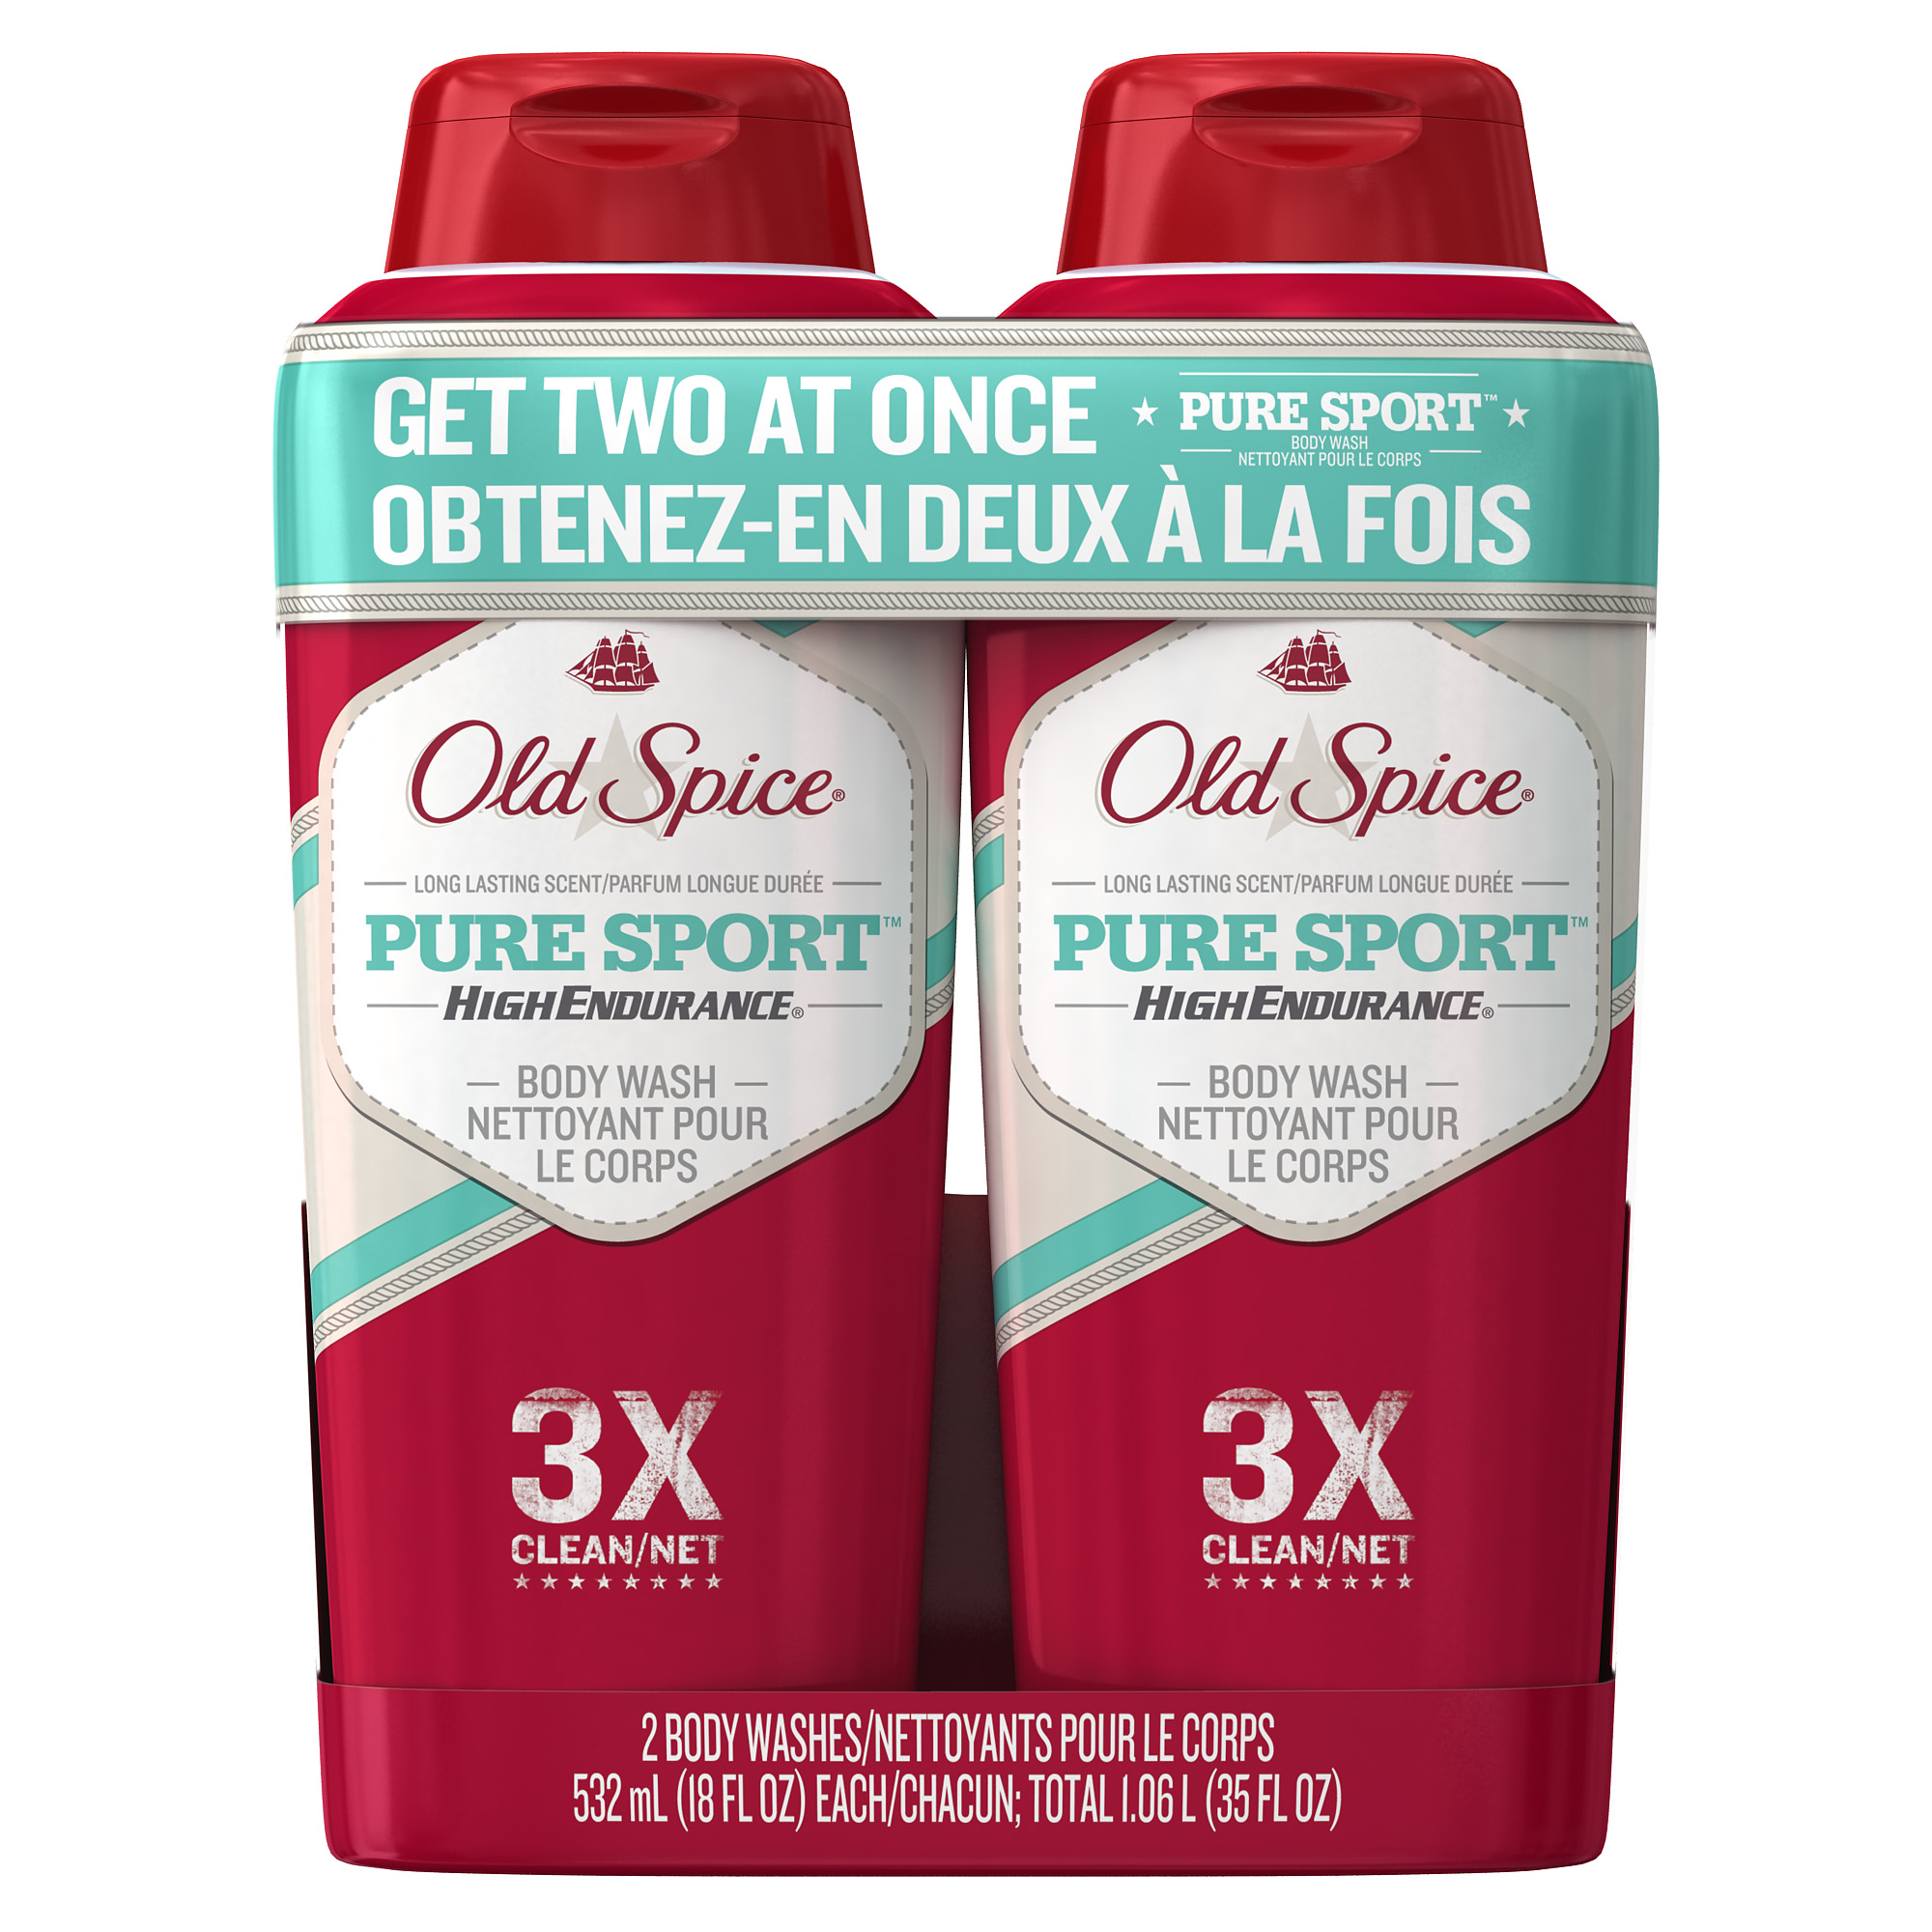 (2 pack) Old Spice High Endurance Pure Sport Body Wash 2X18 oz